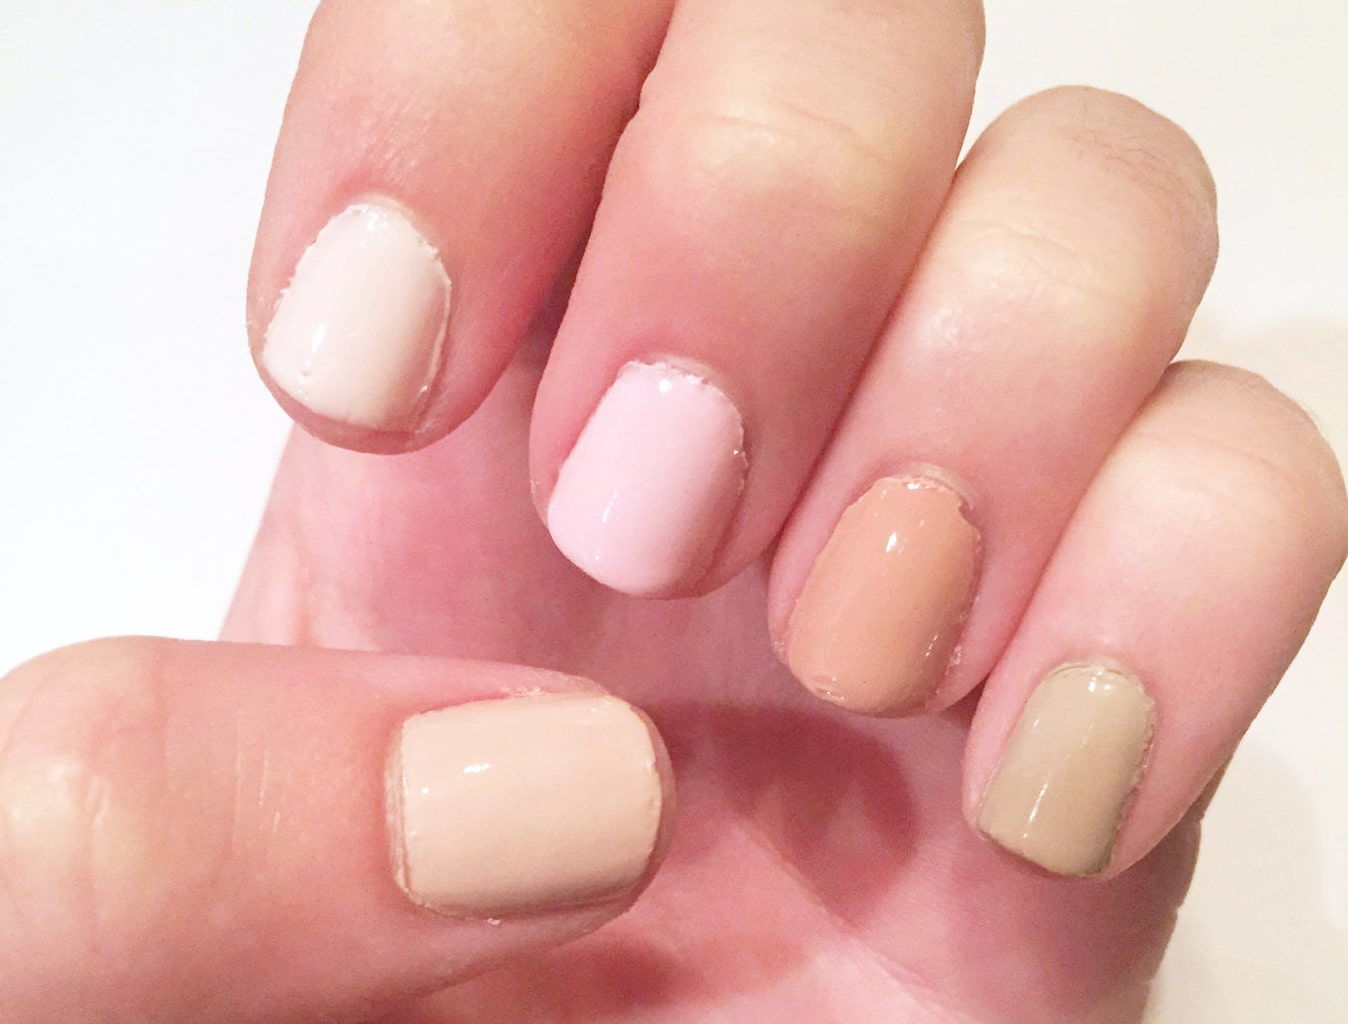 Essie Wild Nudes: Topless and Barefoot on thumb, with Sand Tropez, Bare with Me, Minimalist, and Ballet Slippers on fingers